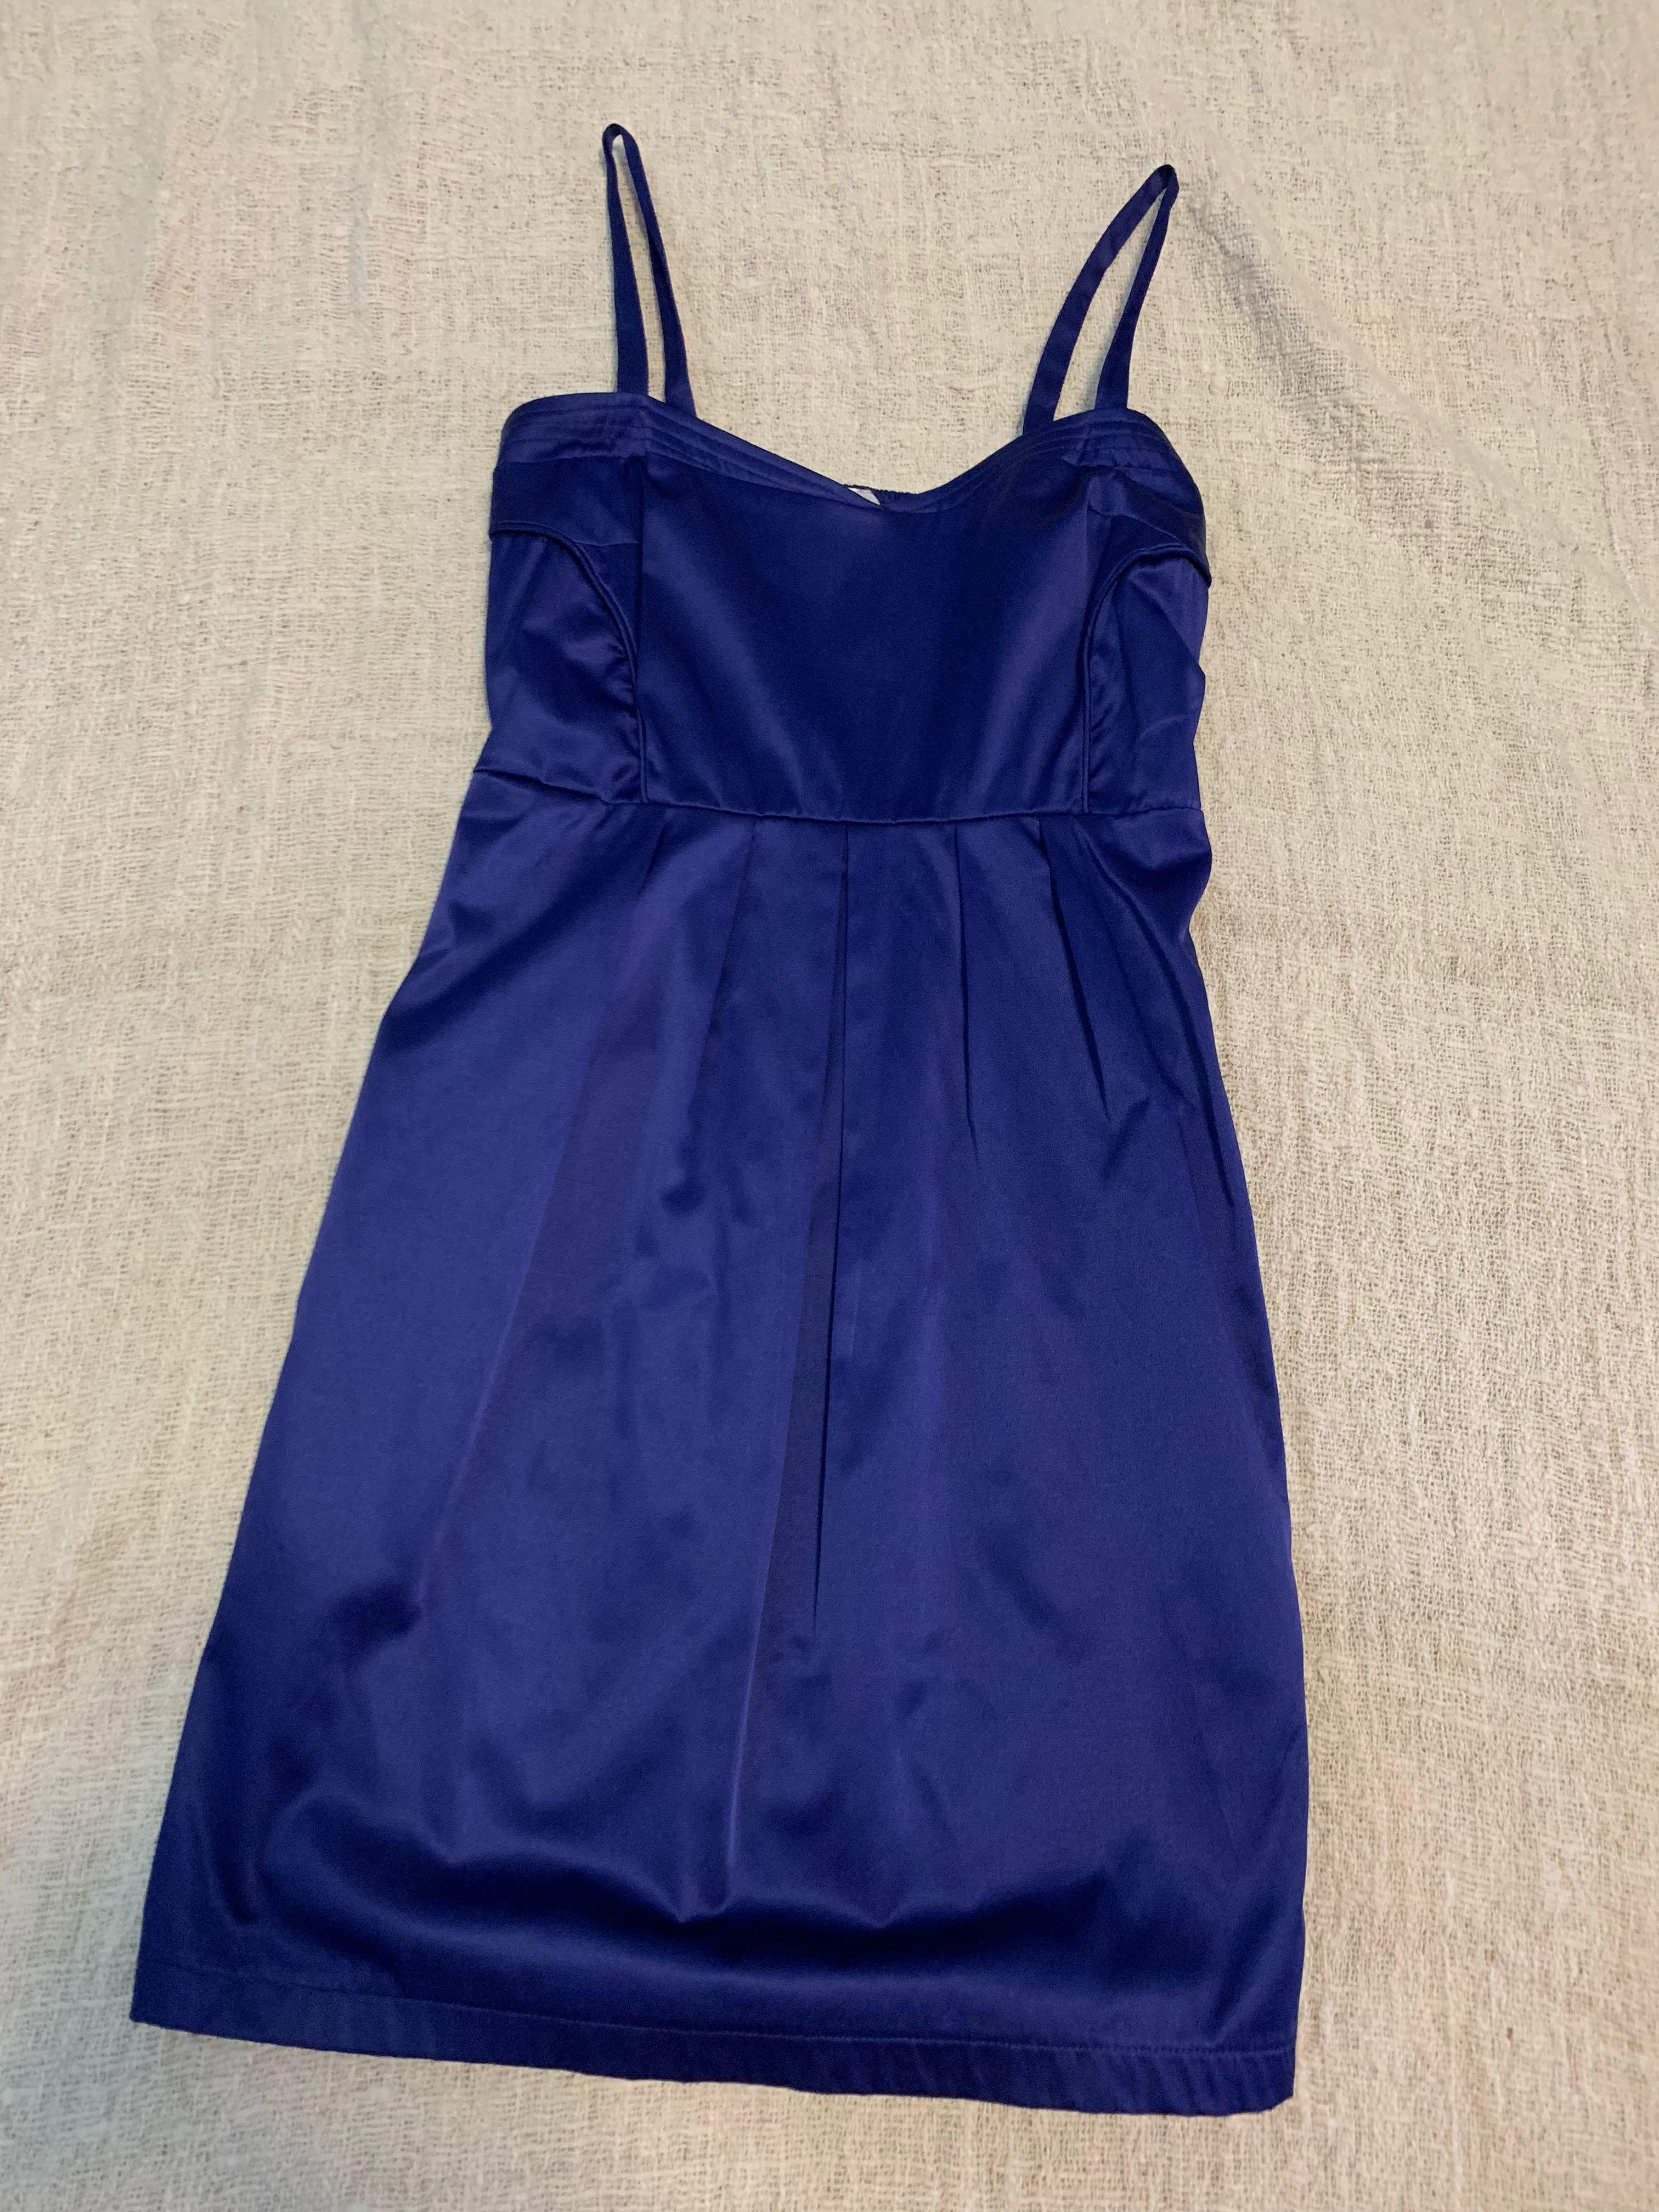 CLOTHES SALE BUFFET: Formal Dresses (Prom/Parties/Events)